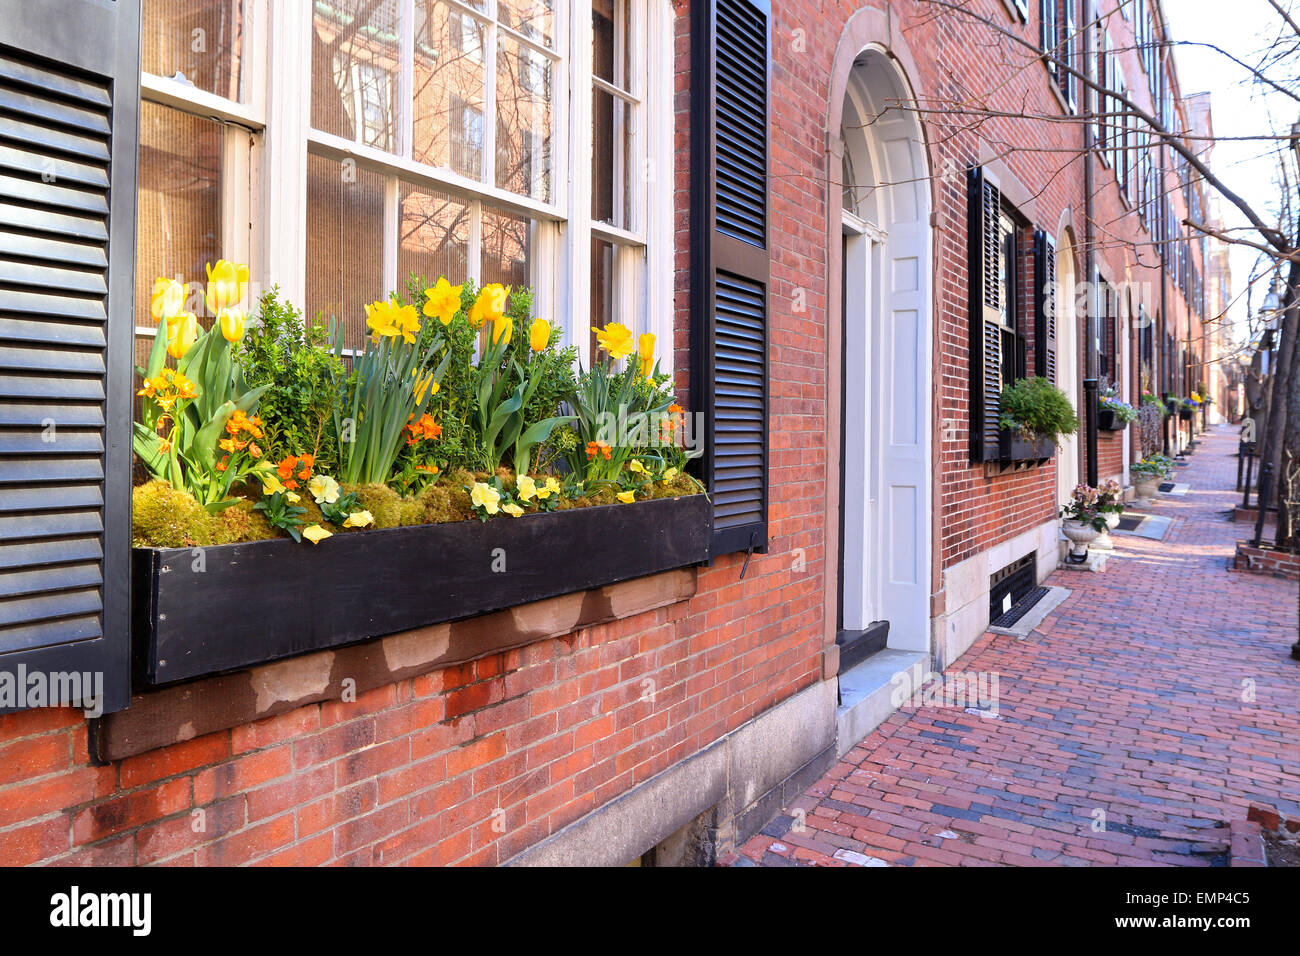 Boston Massachusetts Beacon Hill brick sidewalk with front door and flowers in window. - Stock Image